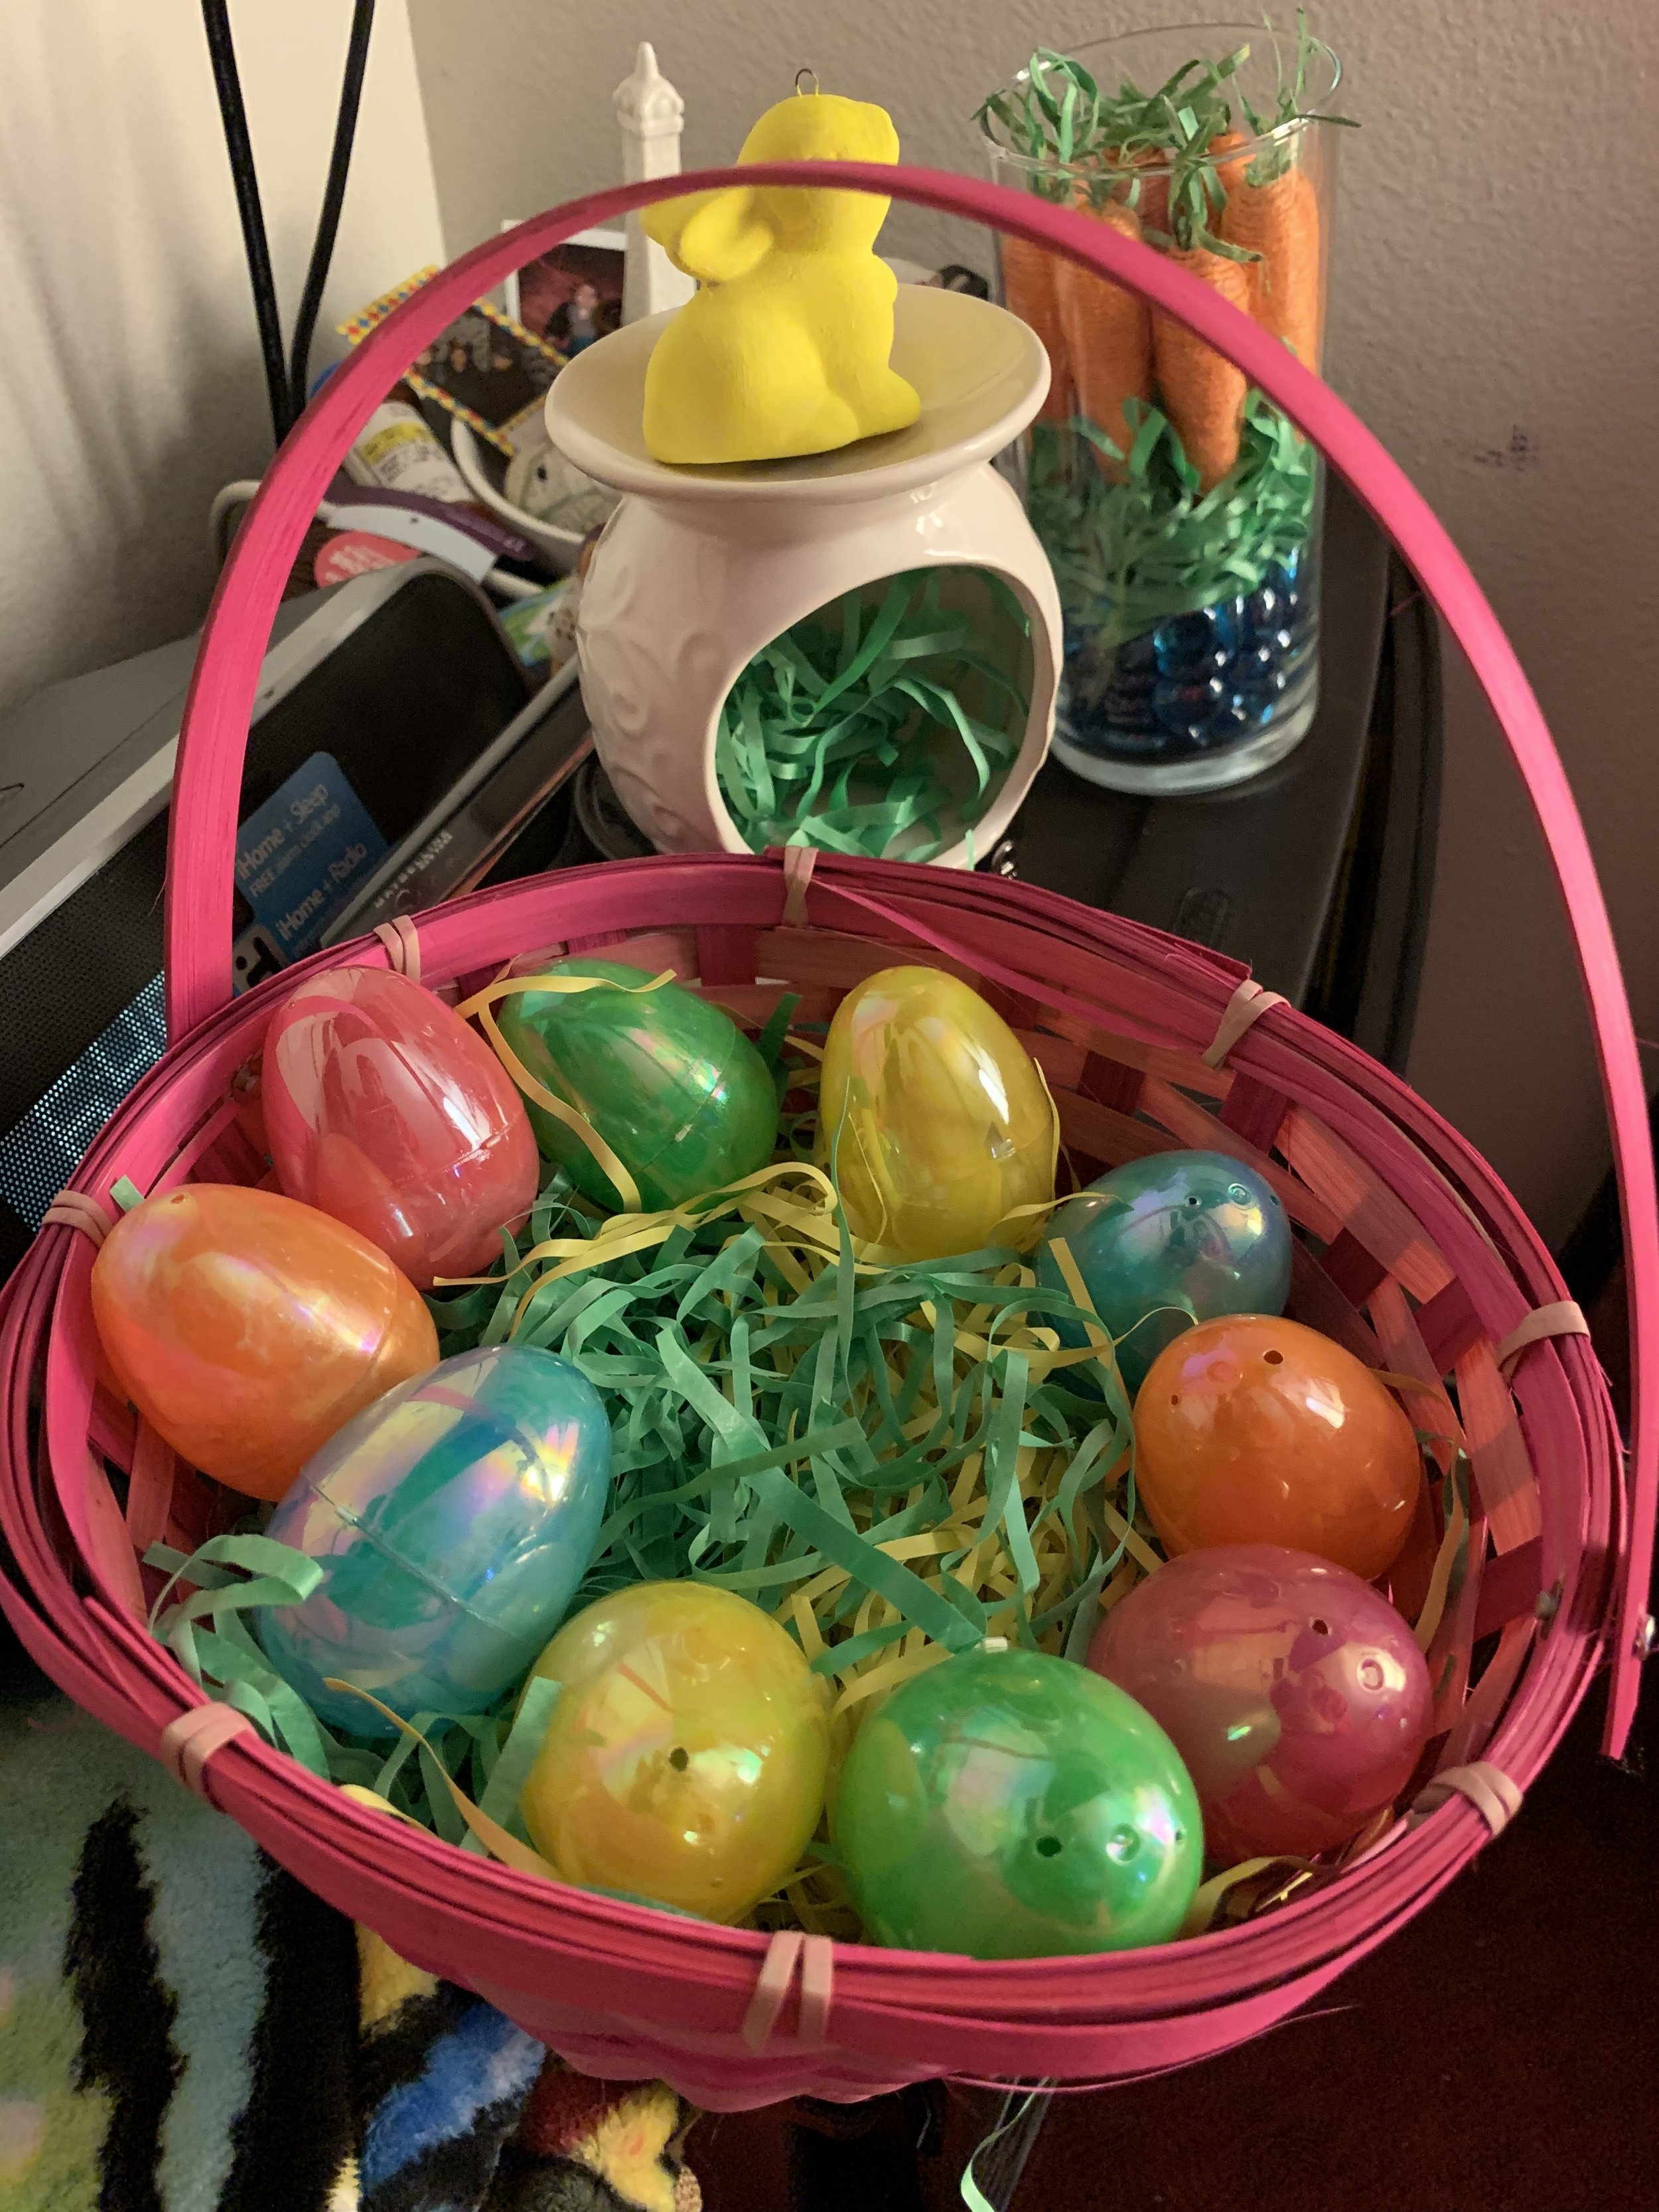 - Step 1: I found a unique basket with different shades of pink, but you can select any color for your basket.Step 2: Add Easter grass inside the basket. This is where I had fun with it and added a different color of grass from pink to yellow.Step 3: I topped it off with these hologram eggs and piled them around the basket. You can also add money or small trinkets. This is perfect to give away for Easter or simply use it as a centerpiece for your home.